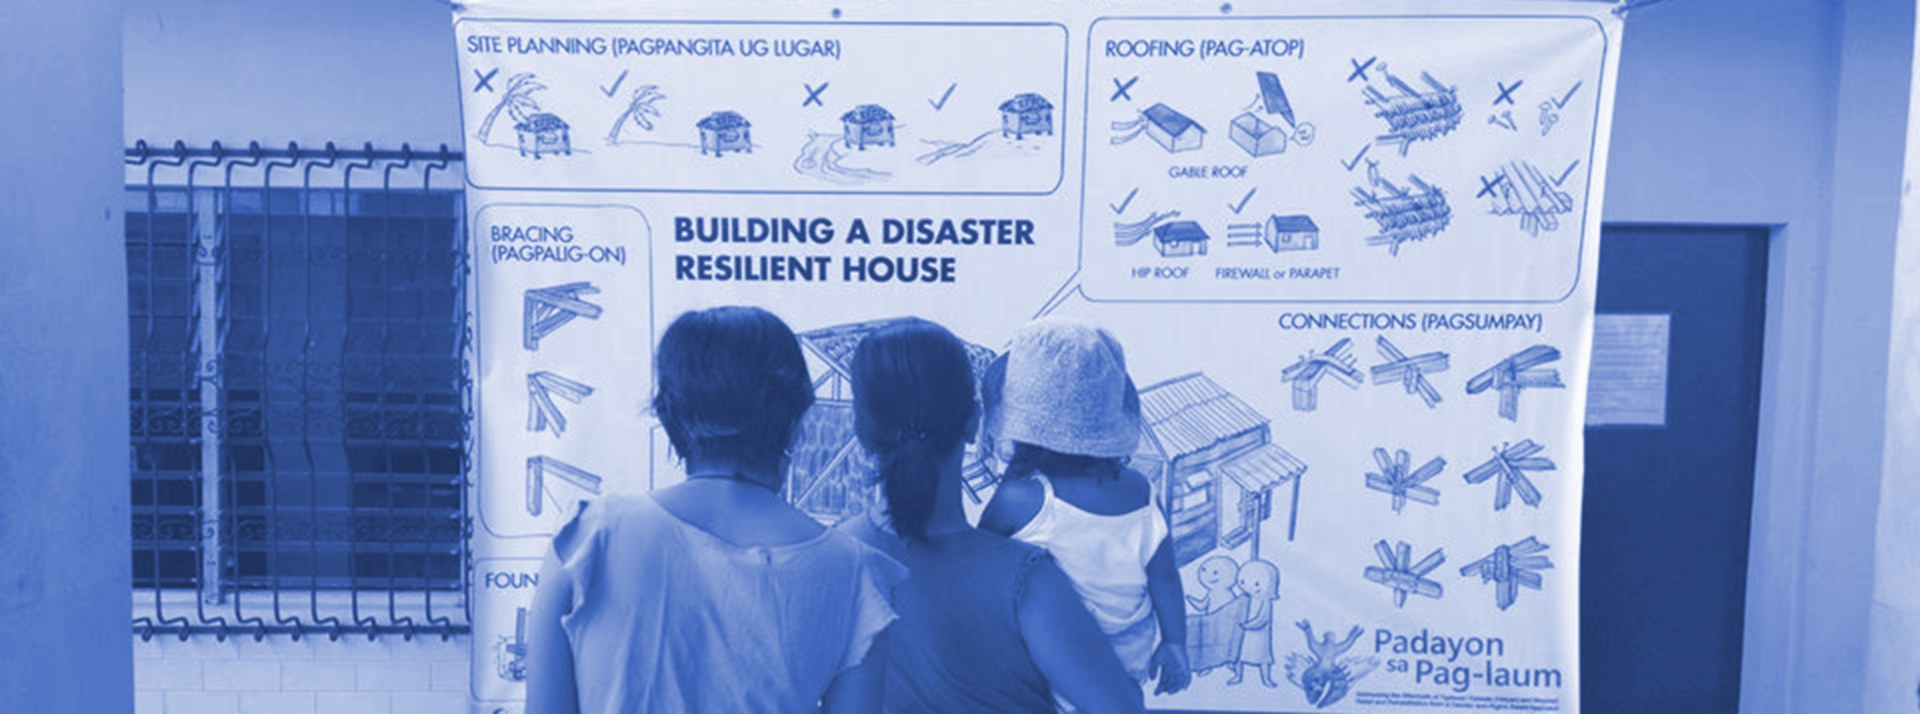 Empowering women to build disaster resilient homes